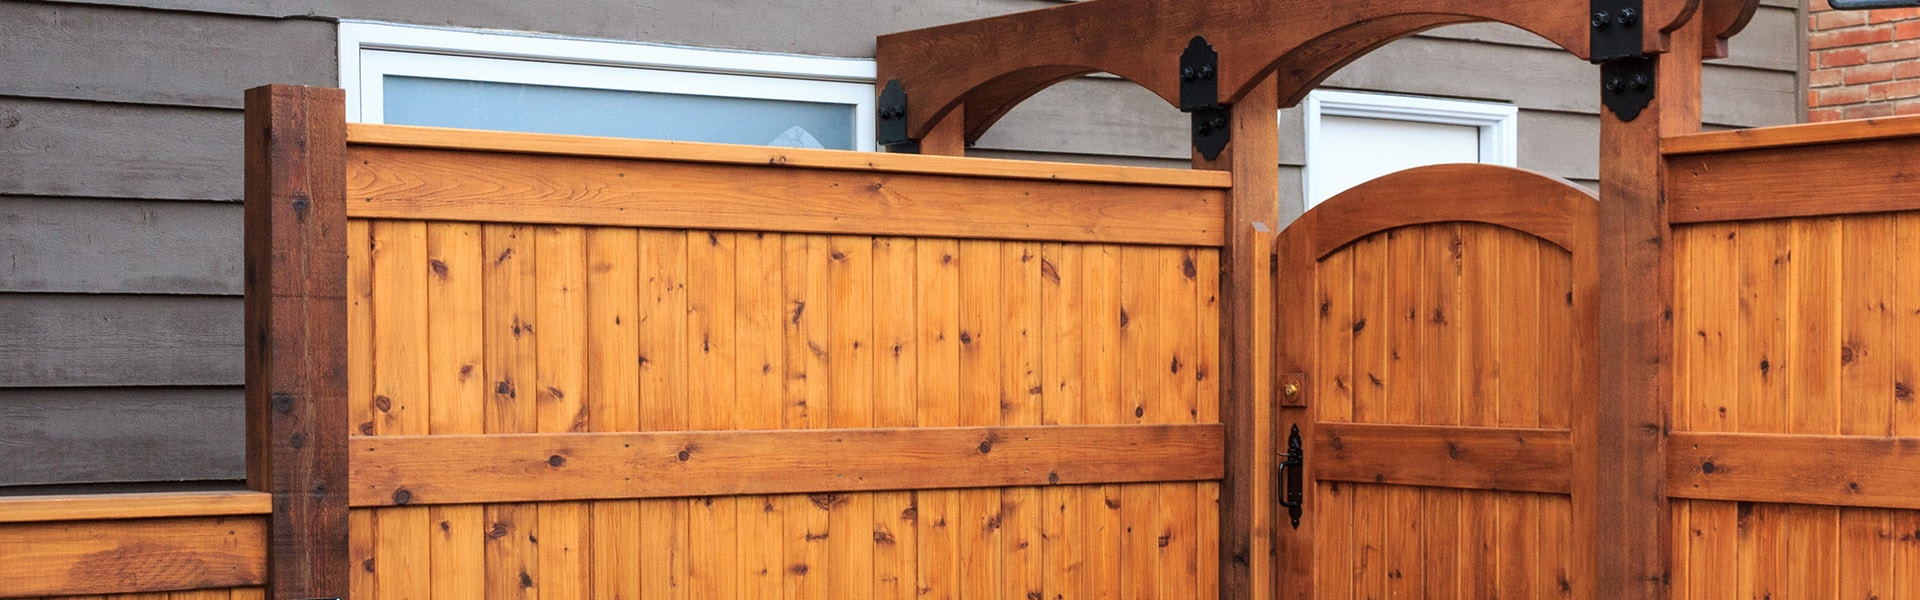 Wood fences and gates frame your backyard landscaping